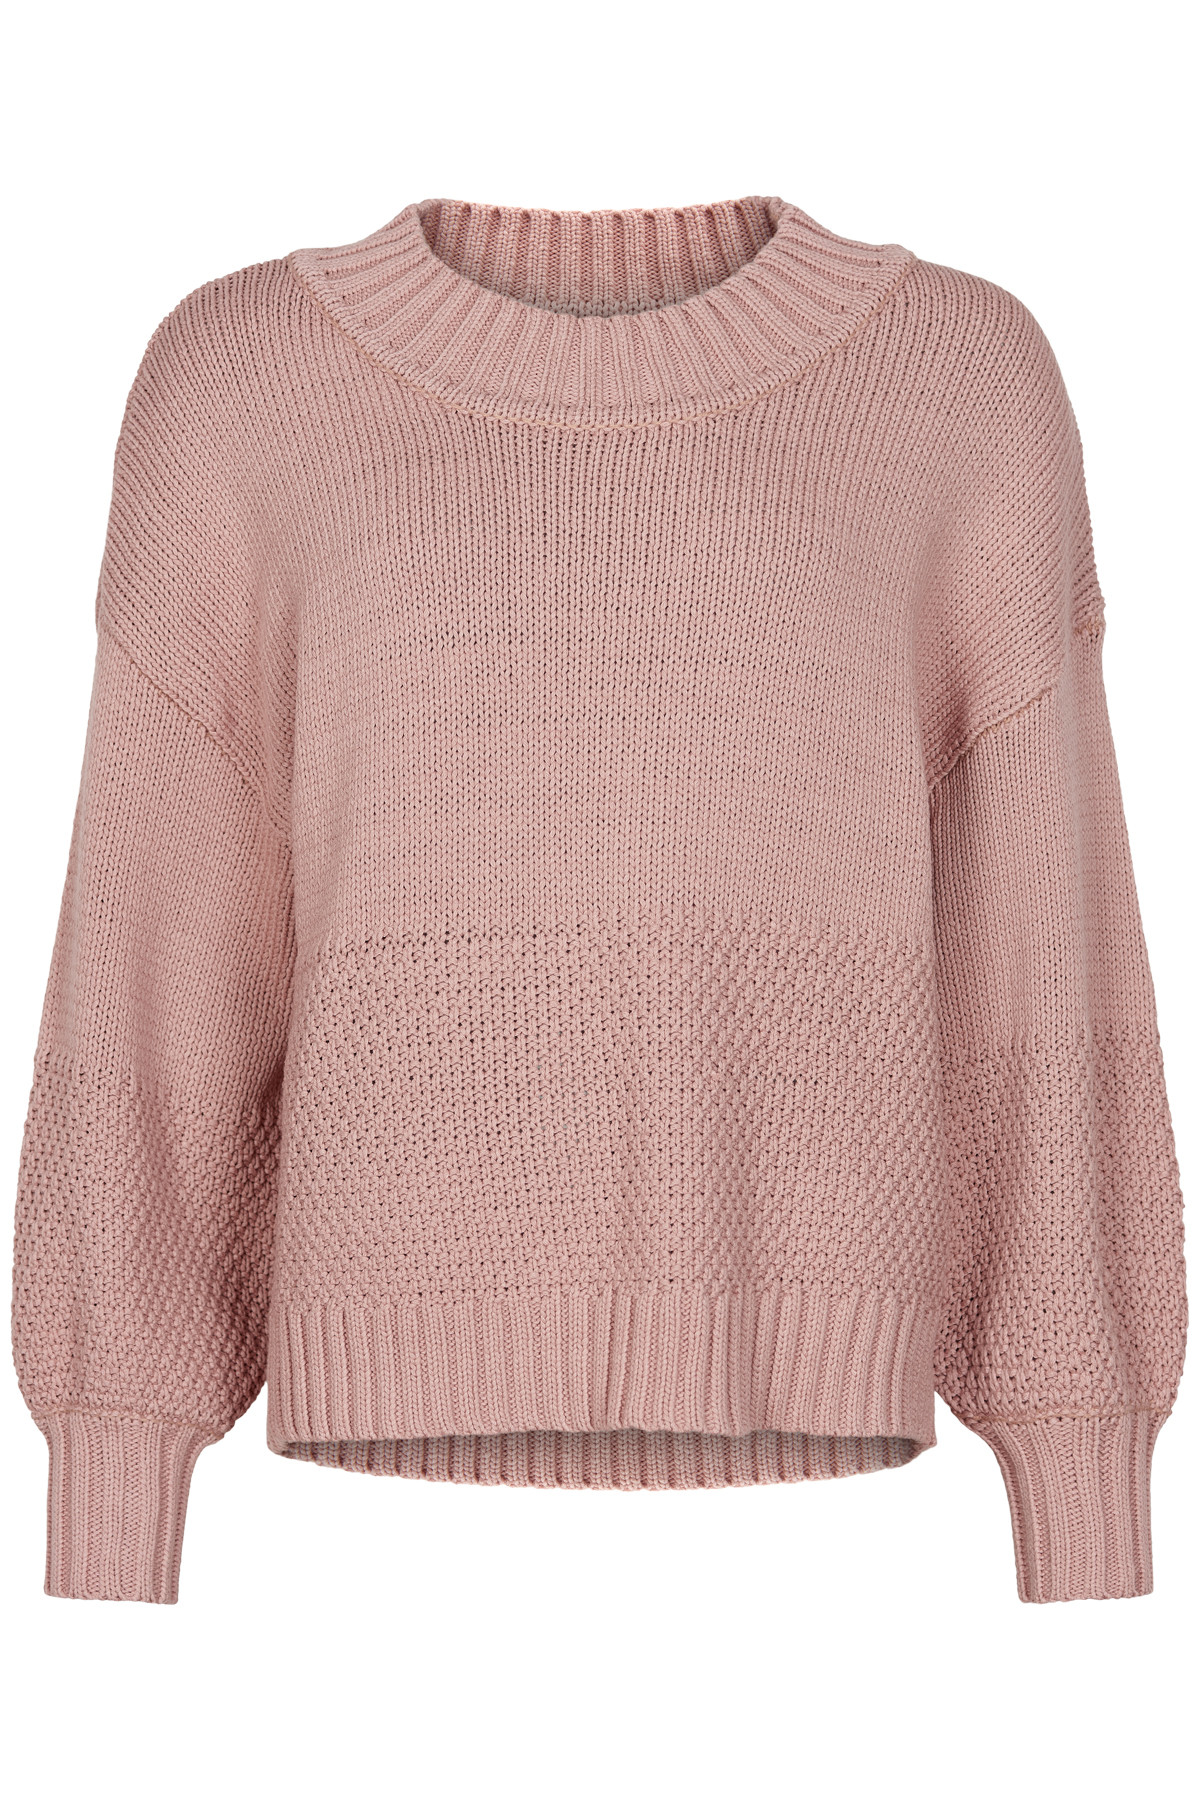 Image of   AND LESS ALANIESE PULLOVER 5120203 (Pale Mauve, L)